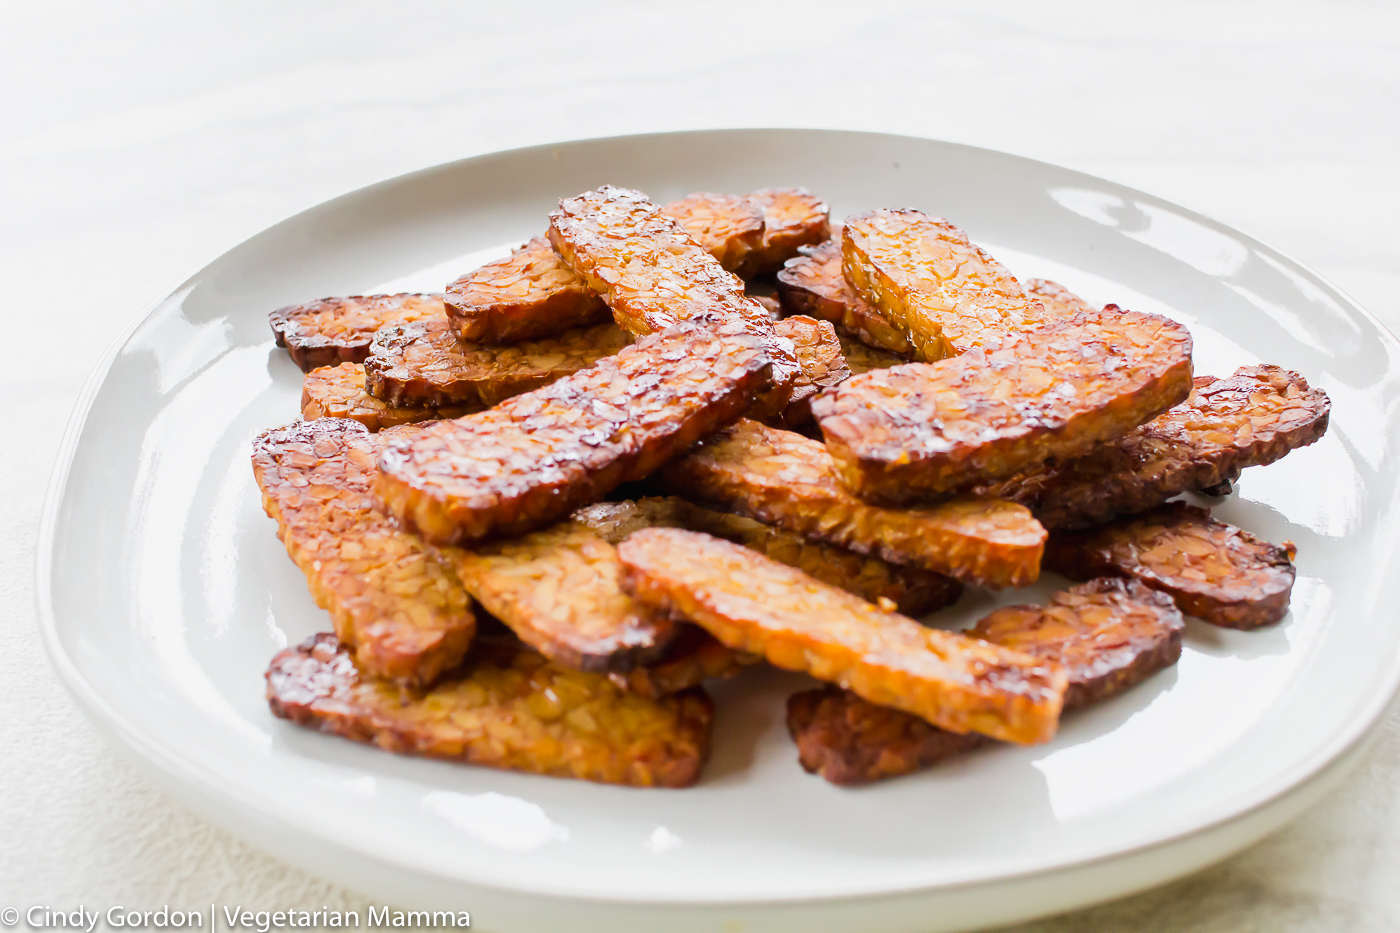 Cooked vegan air fryer bacon on a white plate